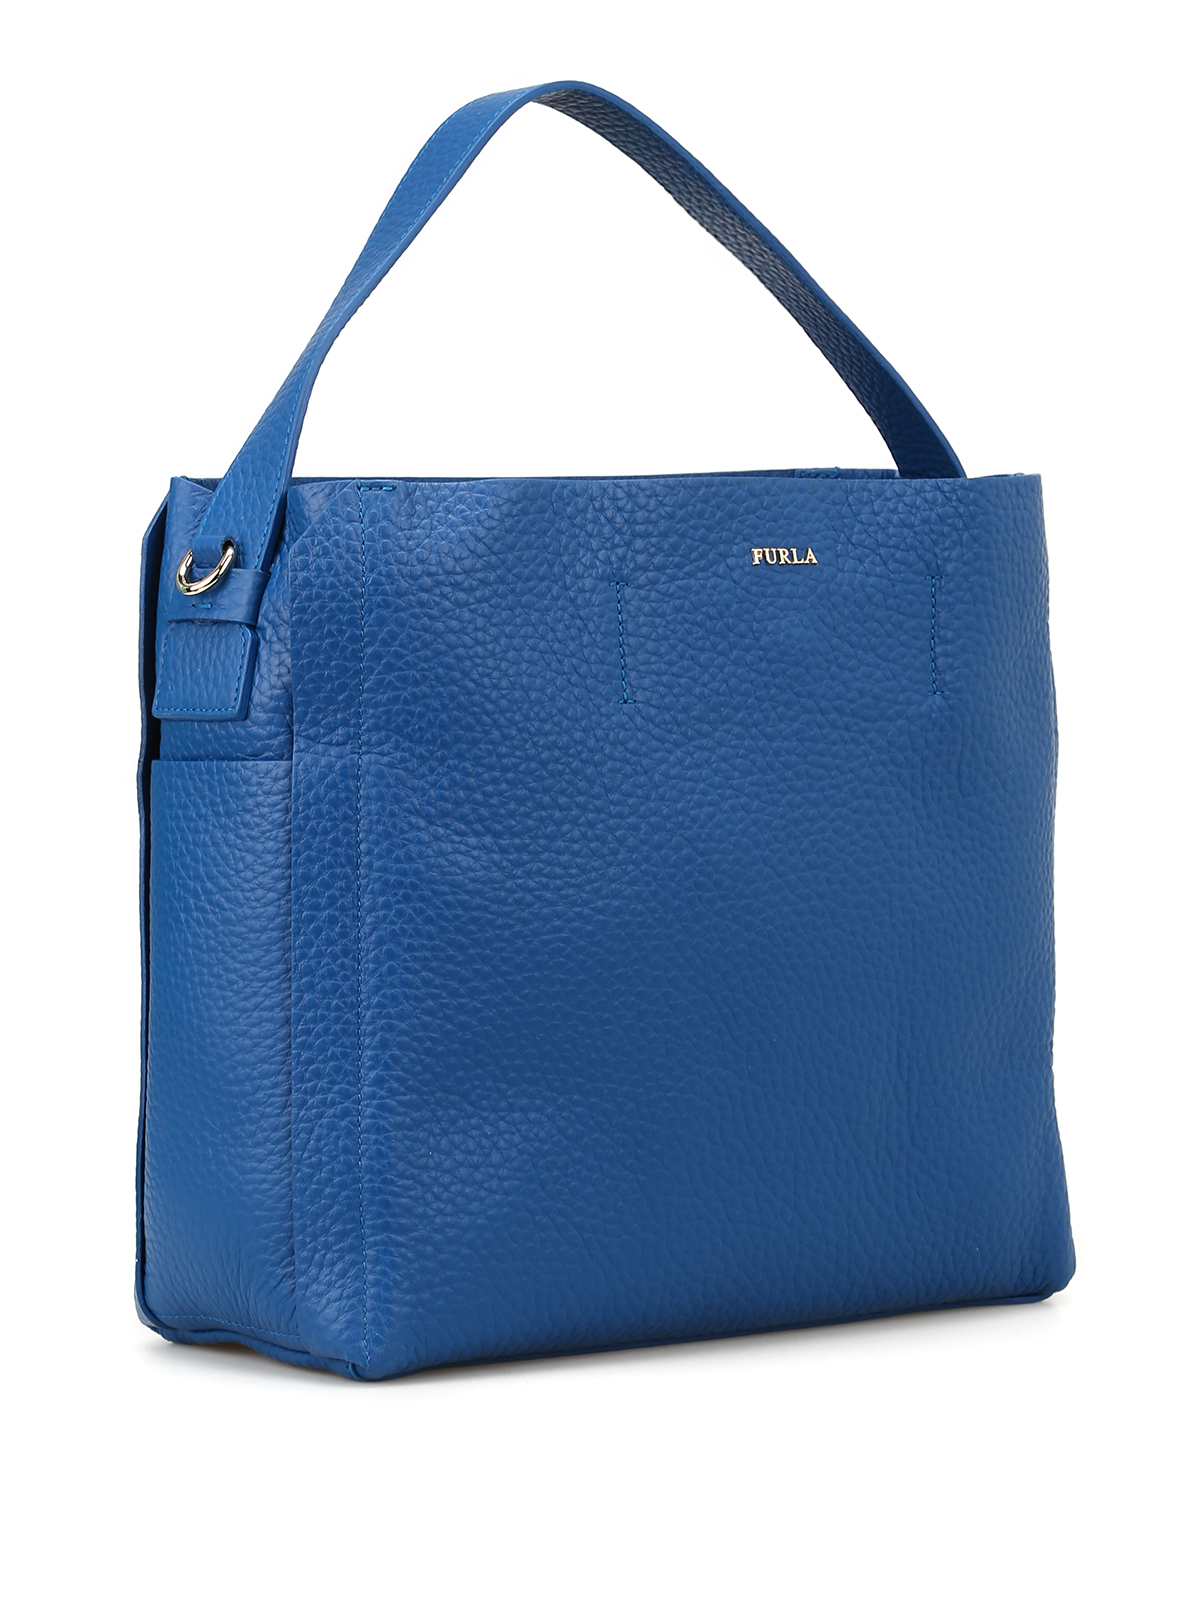 aaa6ef17ae61 furla-online-shoulder-bags-capriccio-m-blue-leather-hobo-bag -00000131364f00s002.jpg